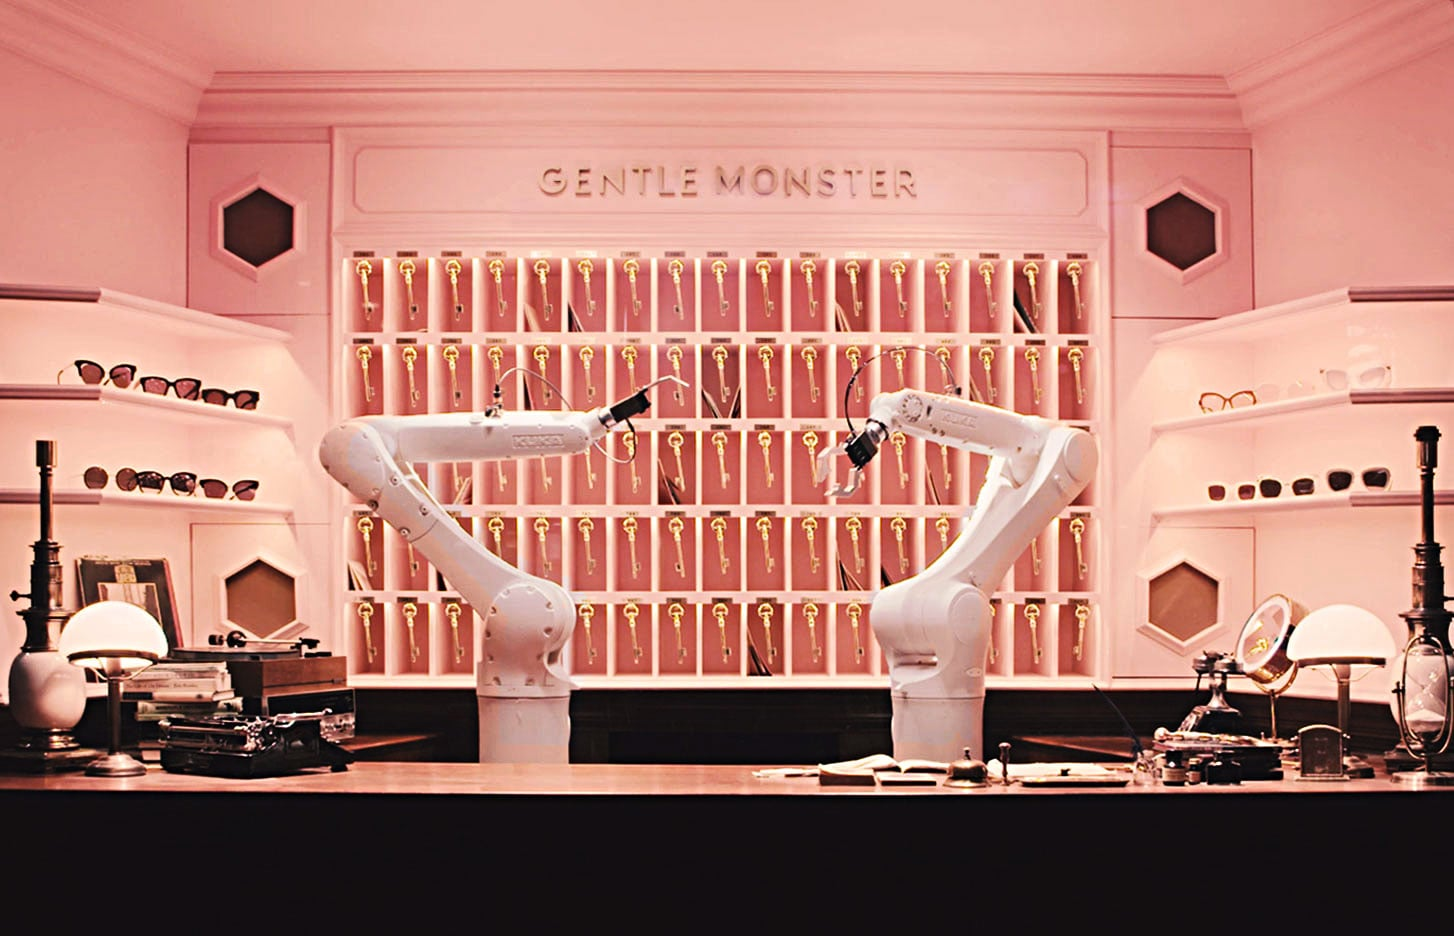 GENTLE MONSTER - Busan, South Korea Store